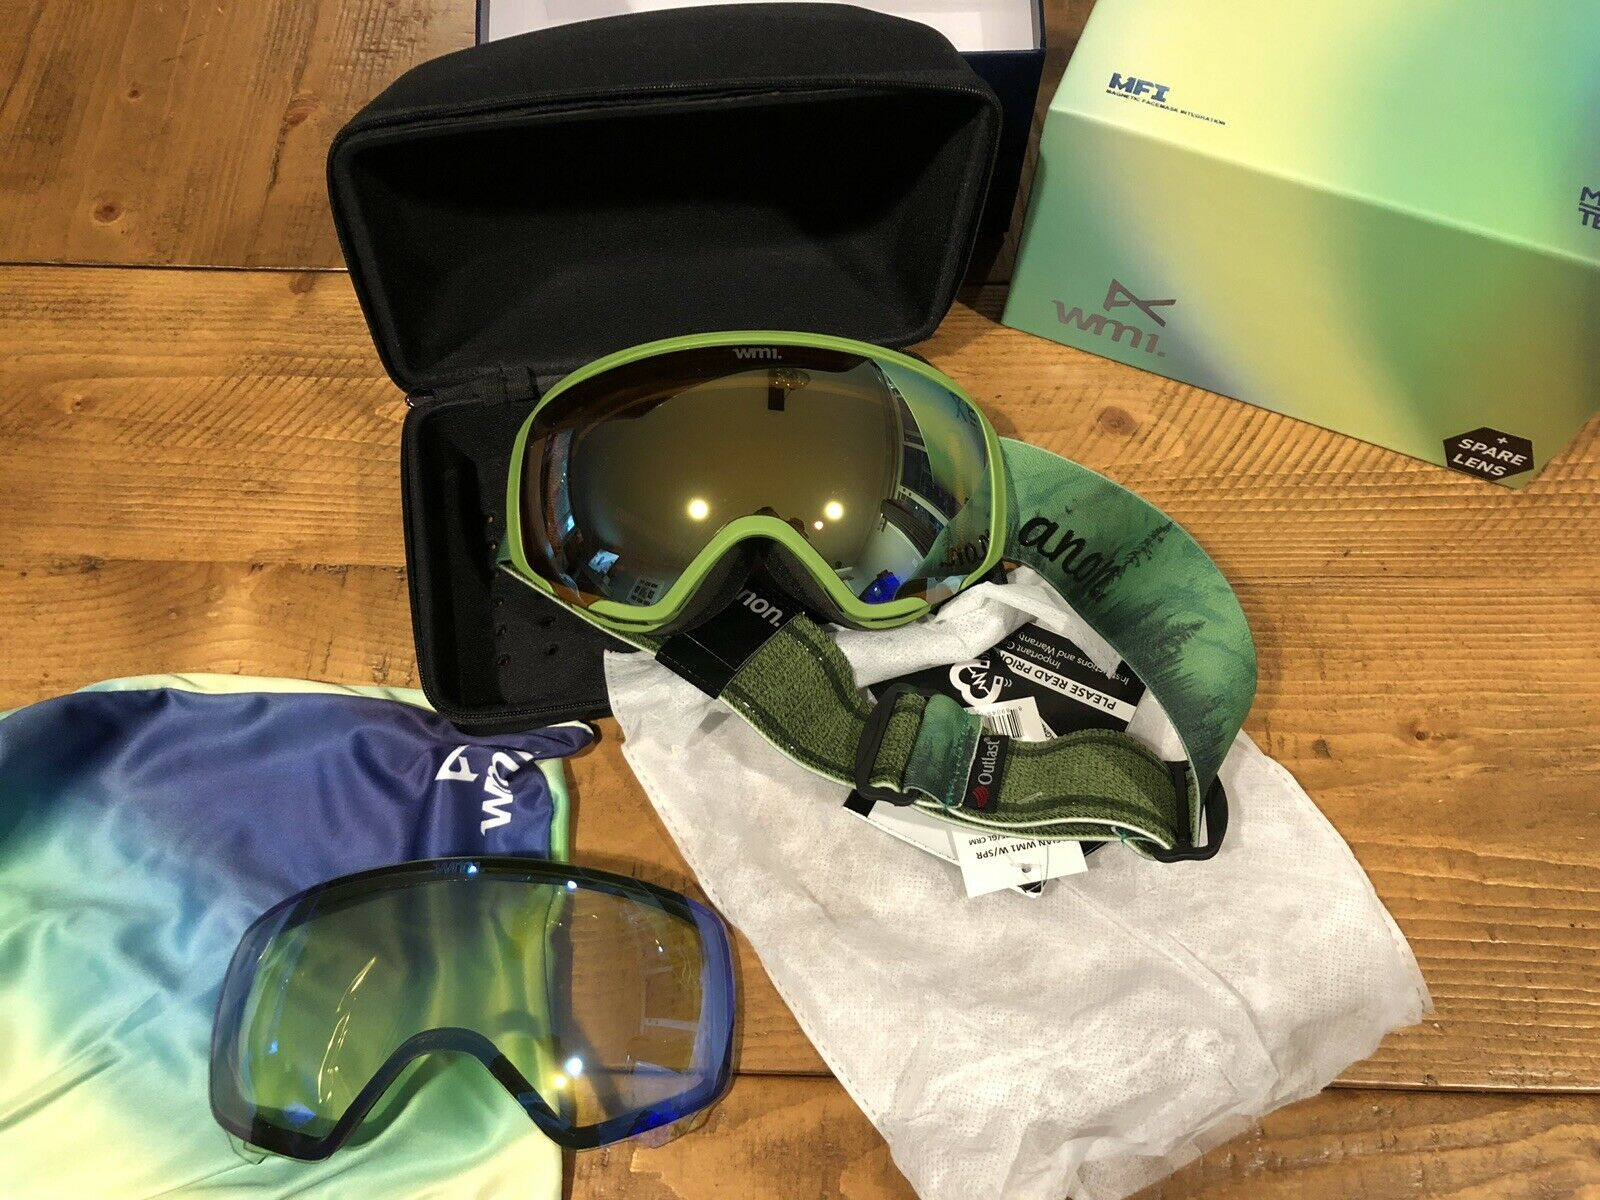 NEW Anon WM1 Burton Snow Goggles  Mother Nature 2x Zeiss Lens Asian  80% off